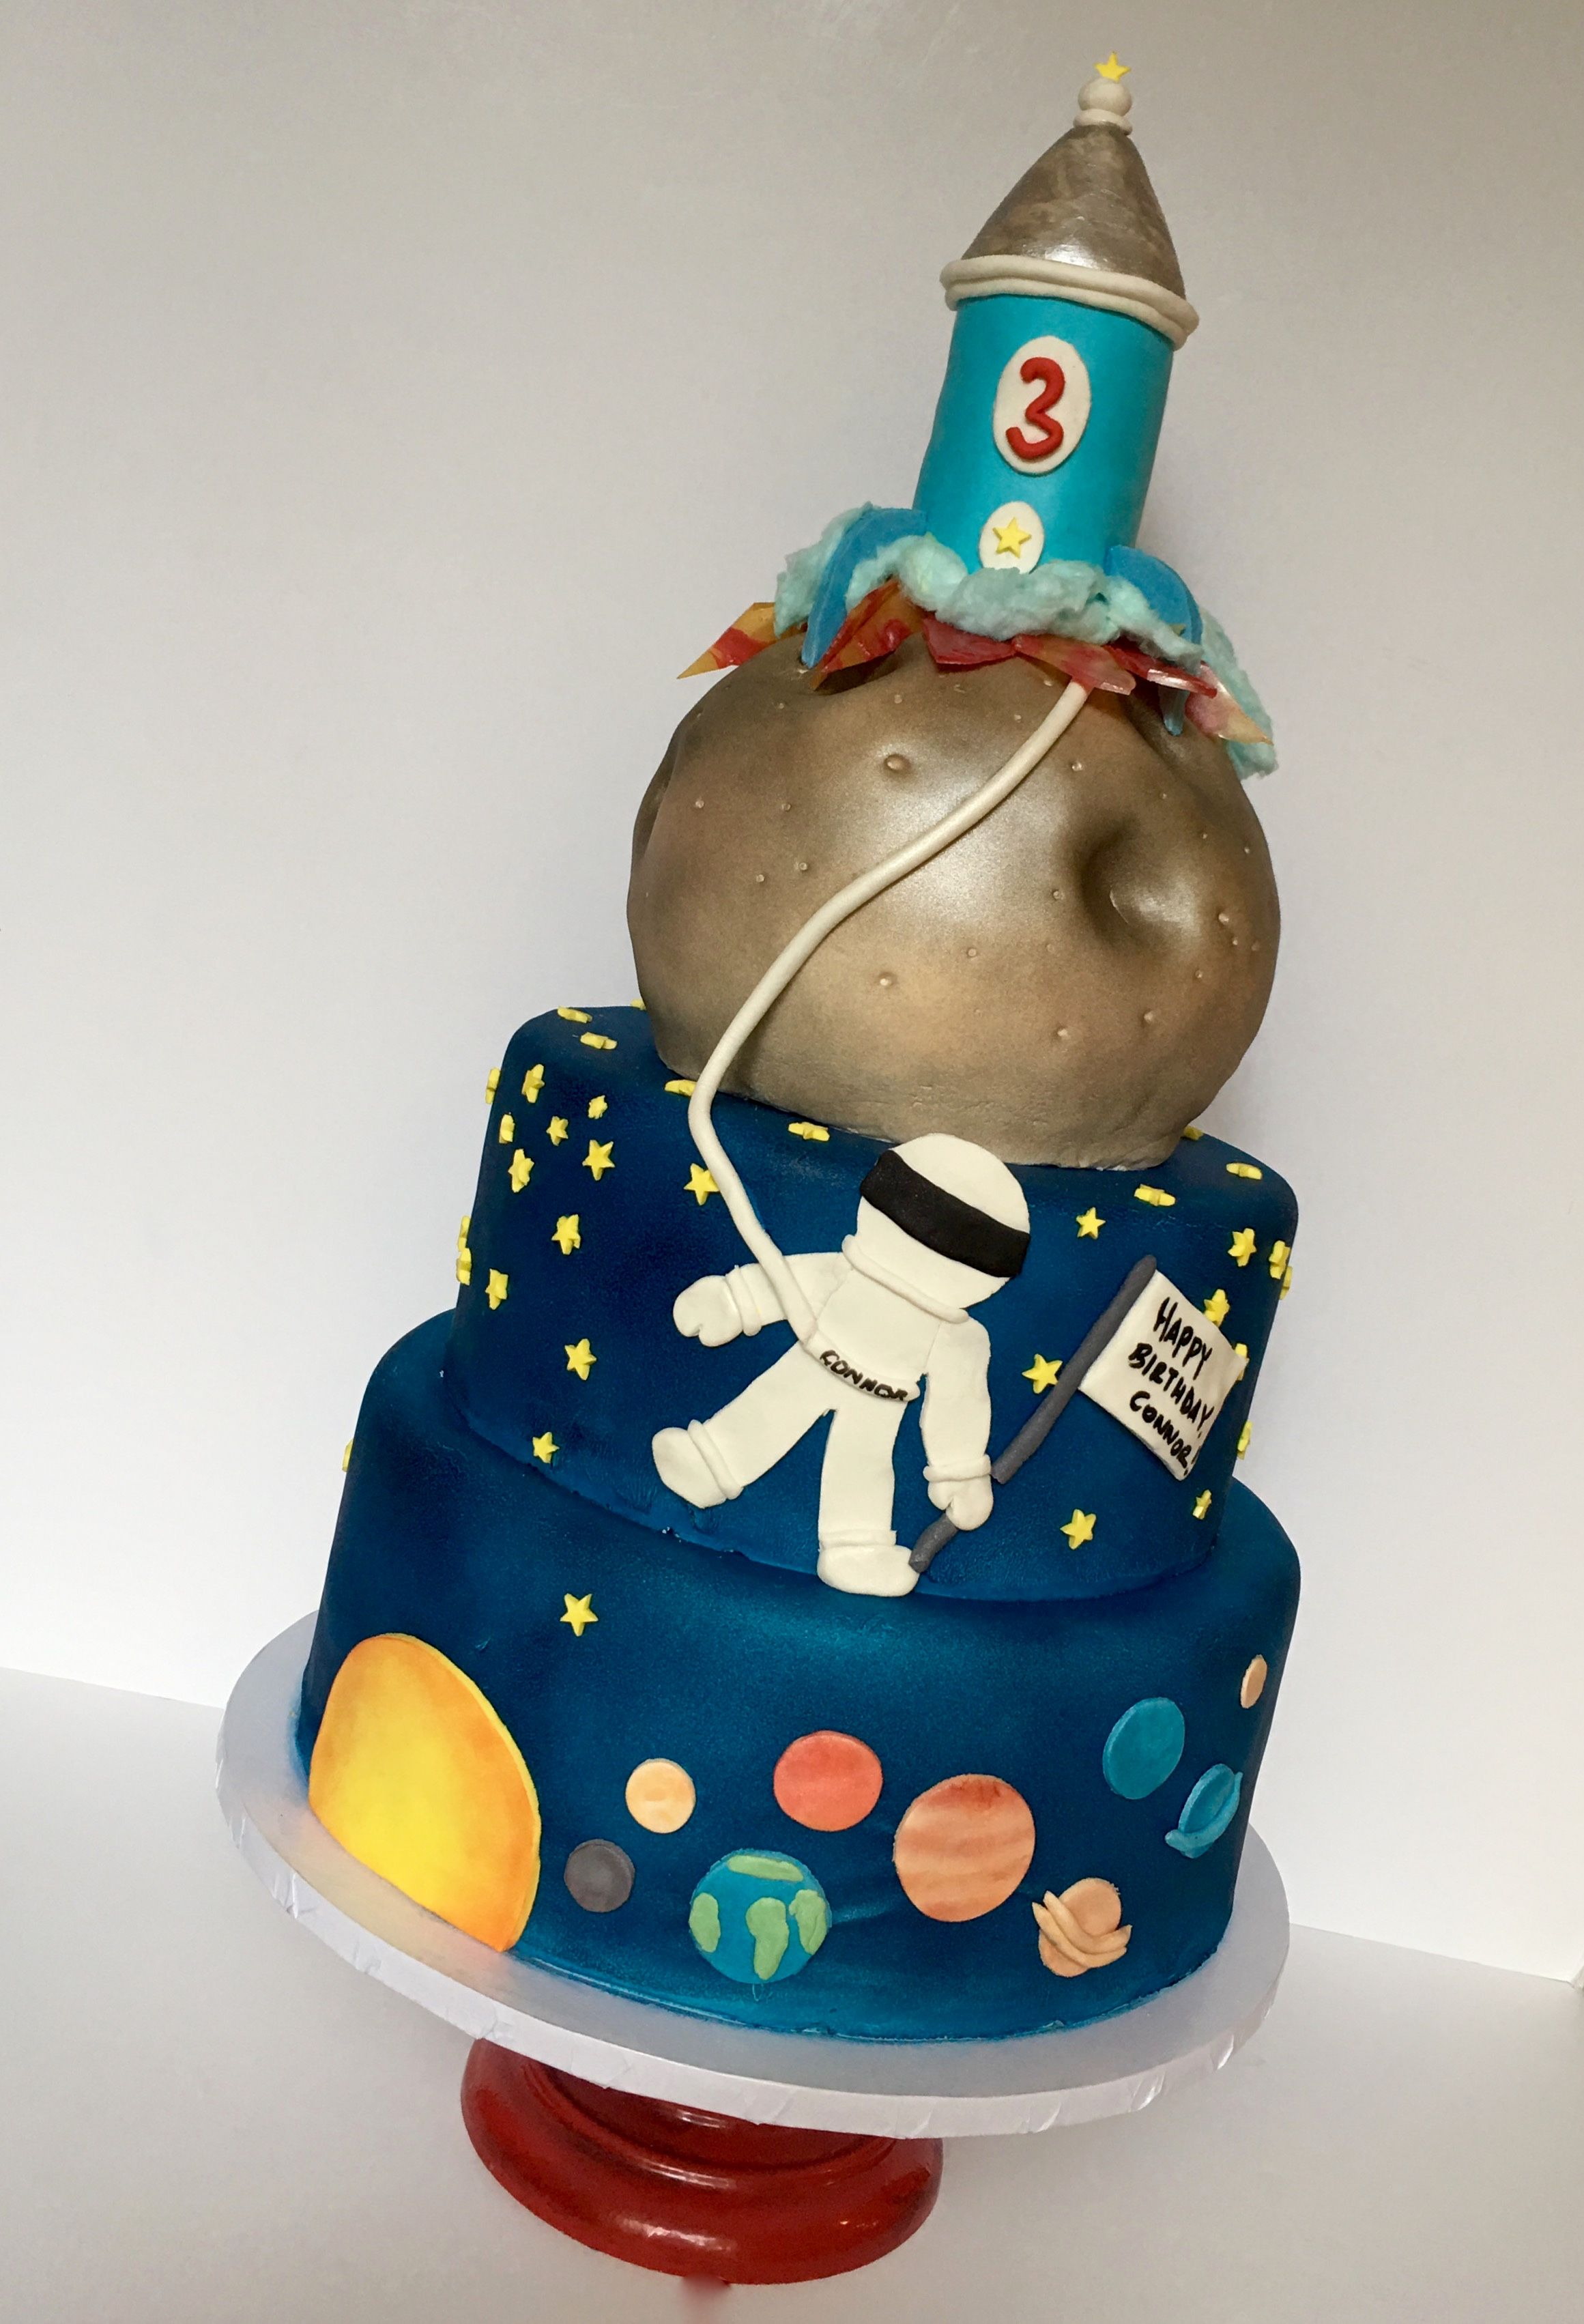 Outer Space Cake With Cake Rocket Ship Solar System Cake